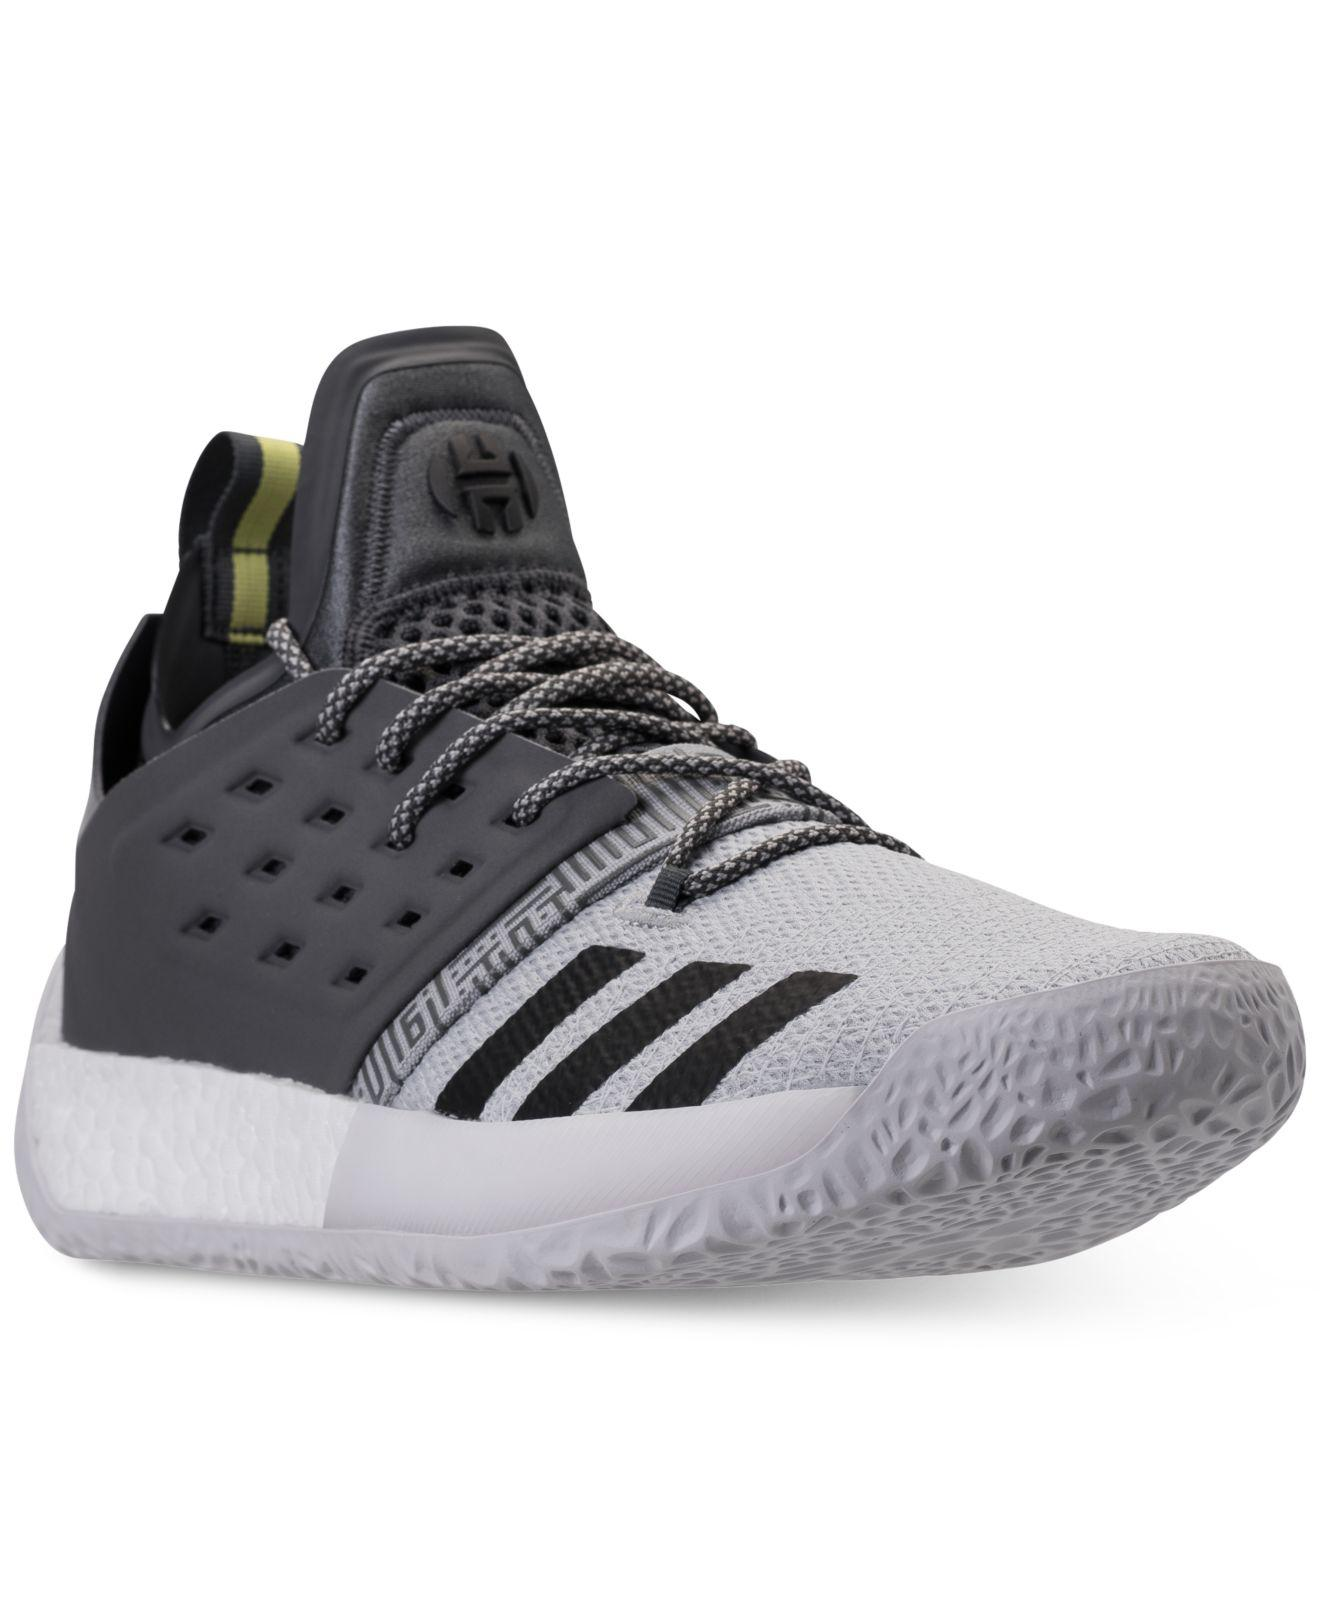 b87e42c4dcc03e 5b5b4 62982  free shipping lyst adidas harden vol.2 basketball sneakers  from finish line in 55be4 59111